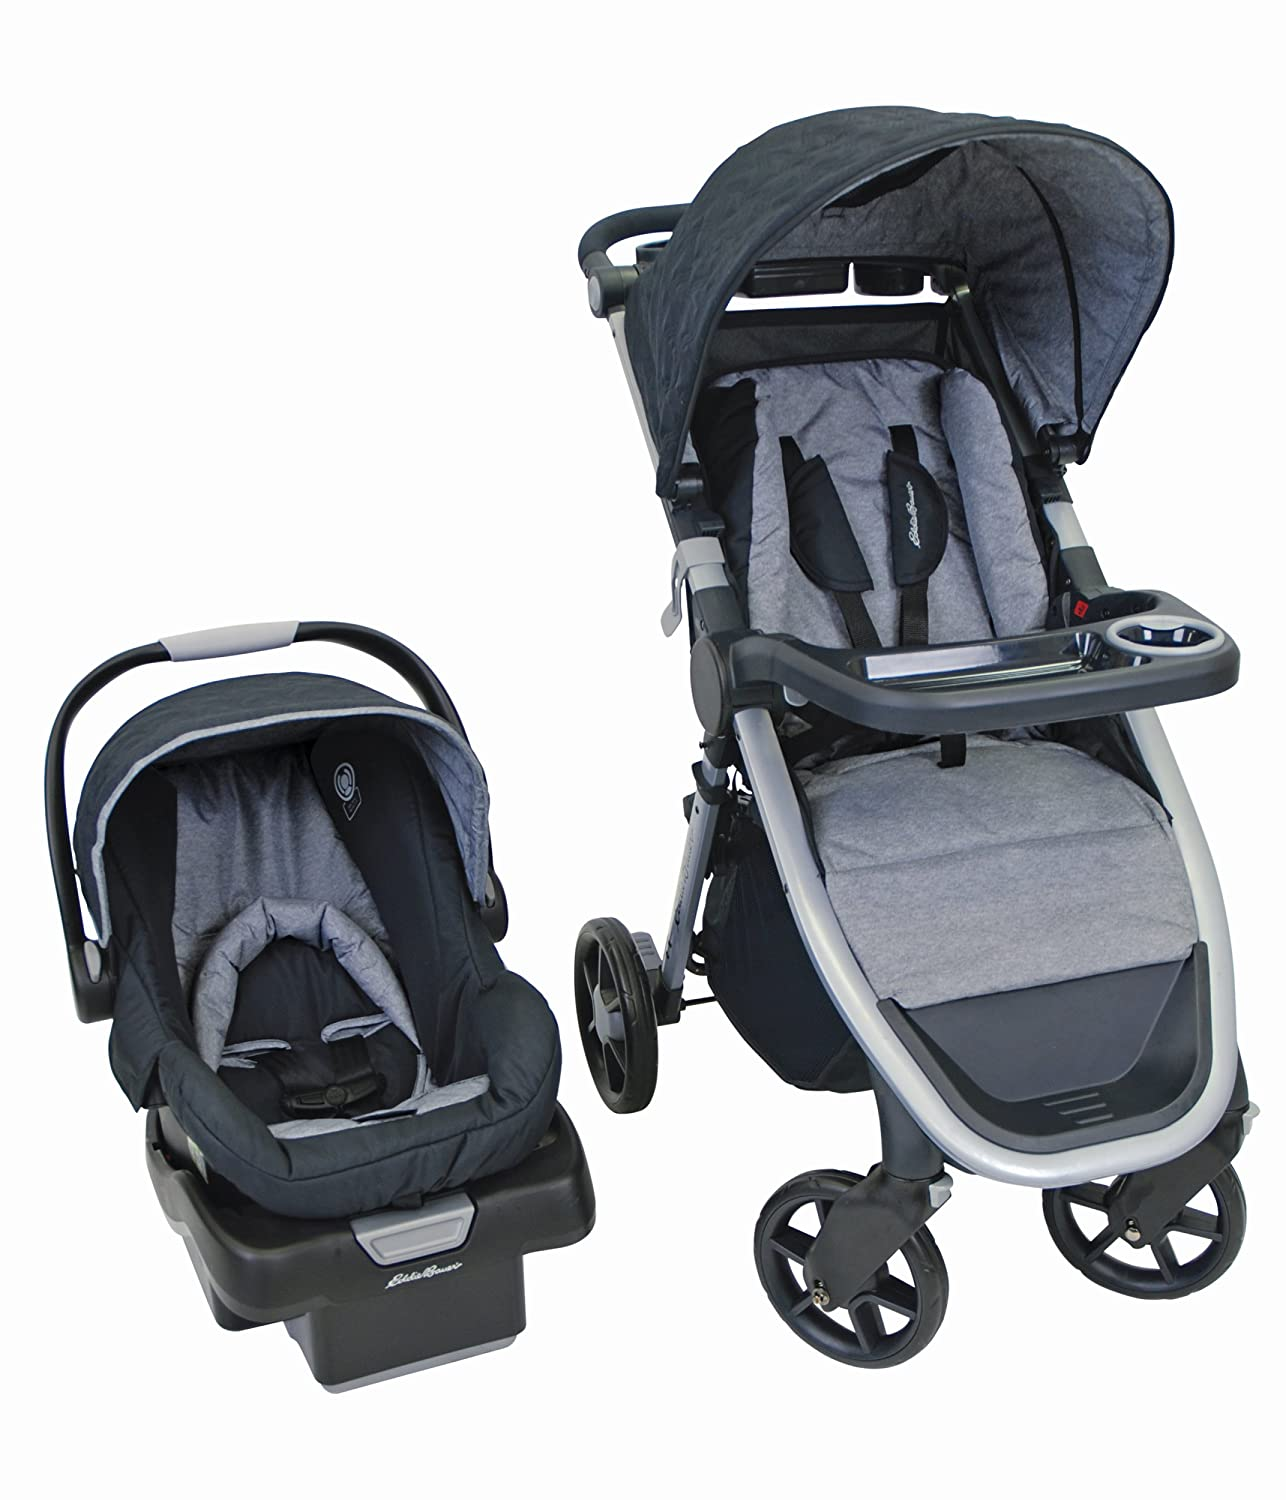 Eddie Bauer 01331CNGB Alpine 4 Travel System - Night Blue Dorel Juvenile